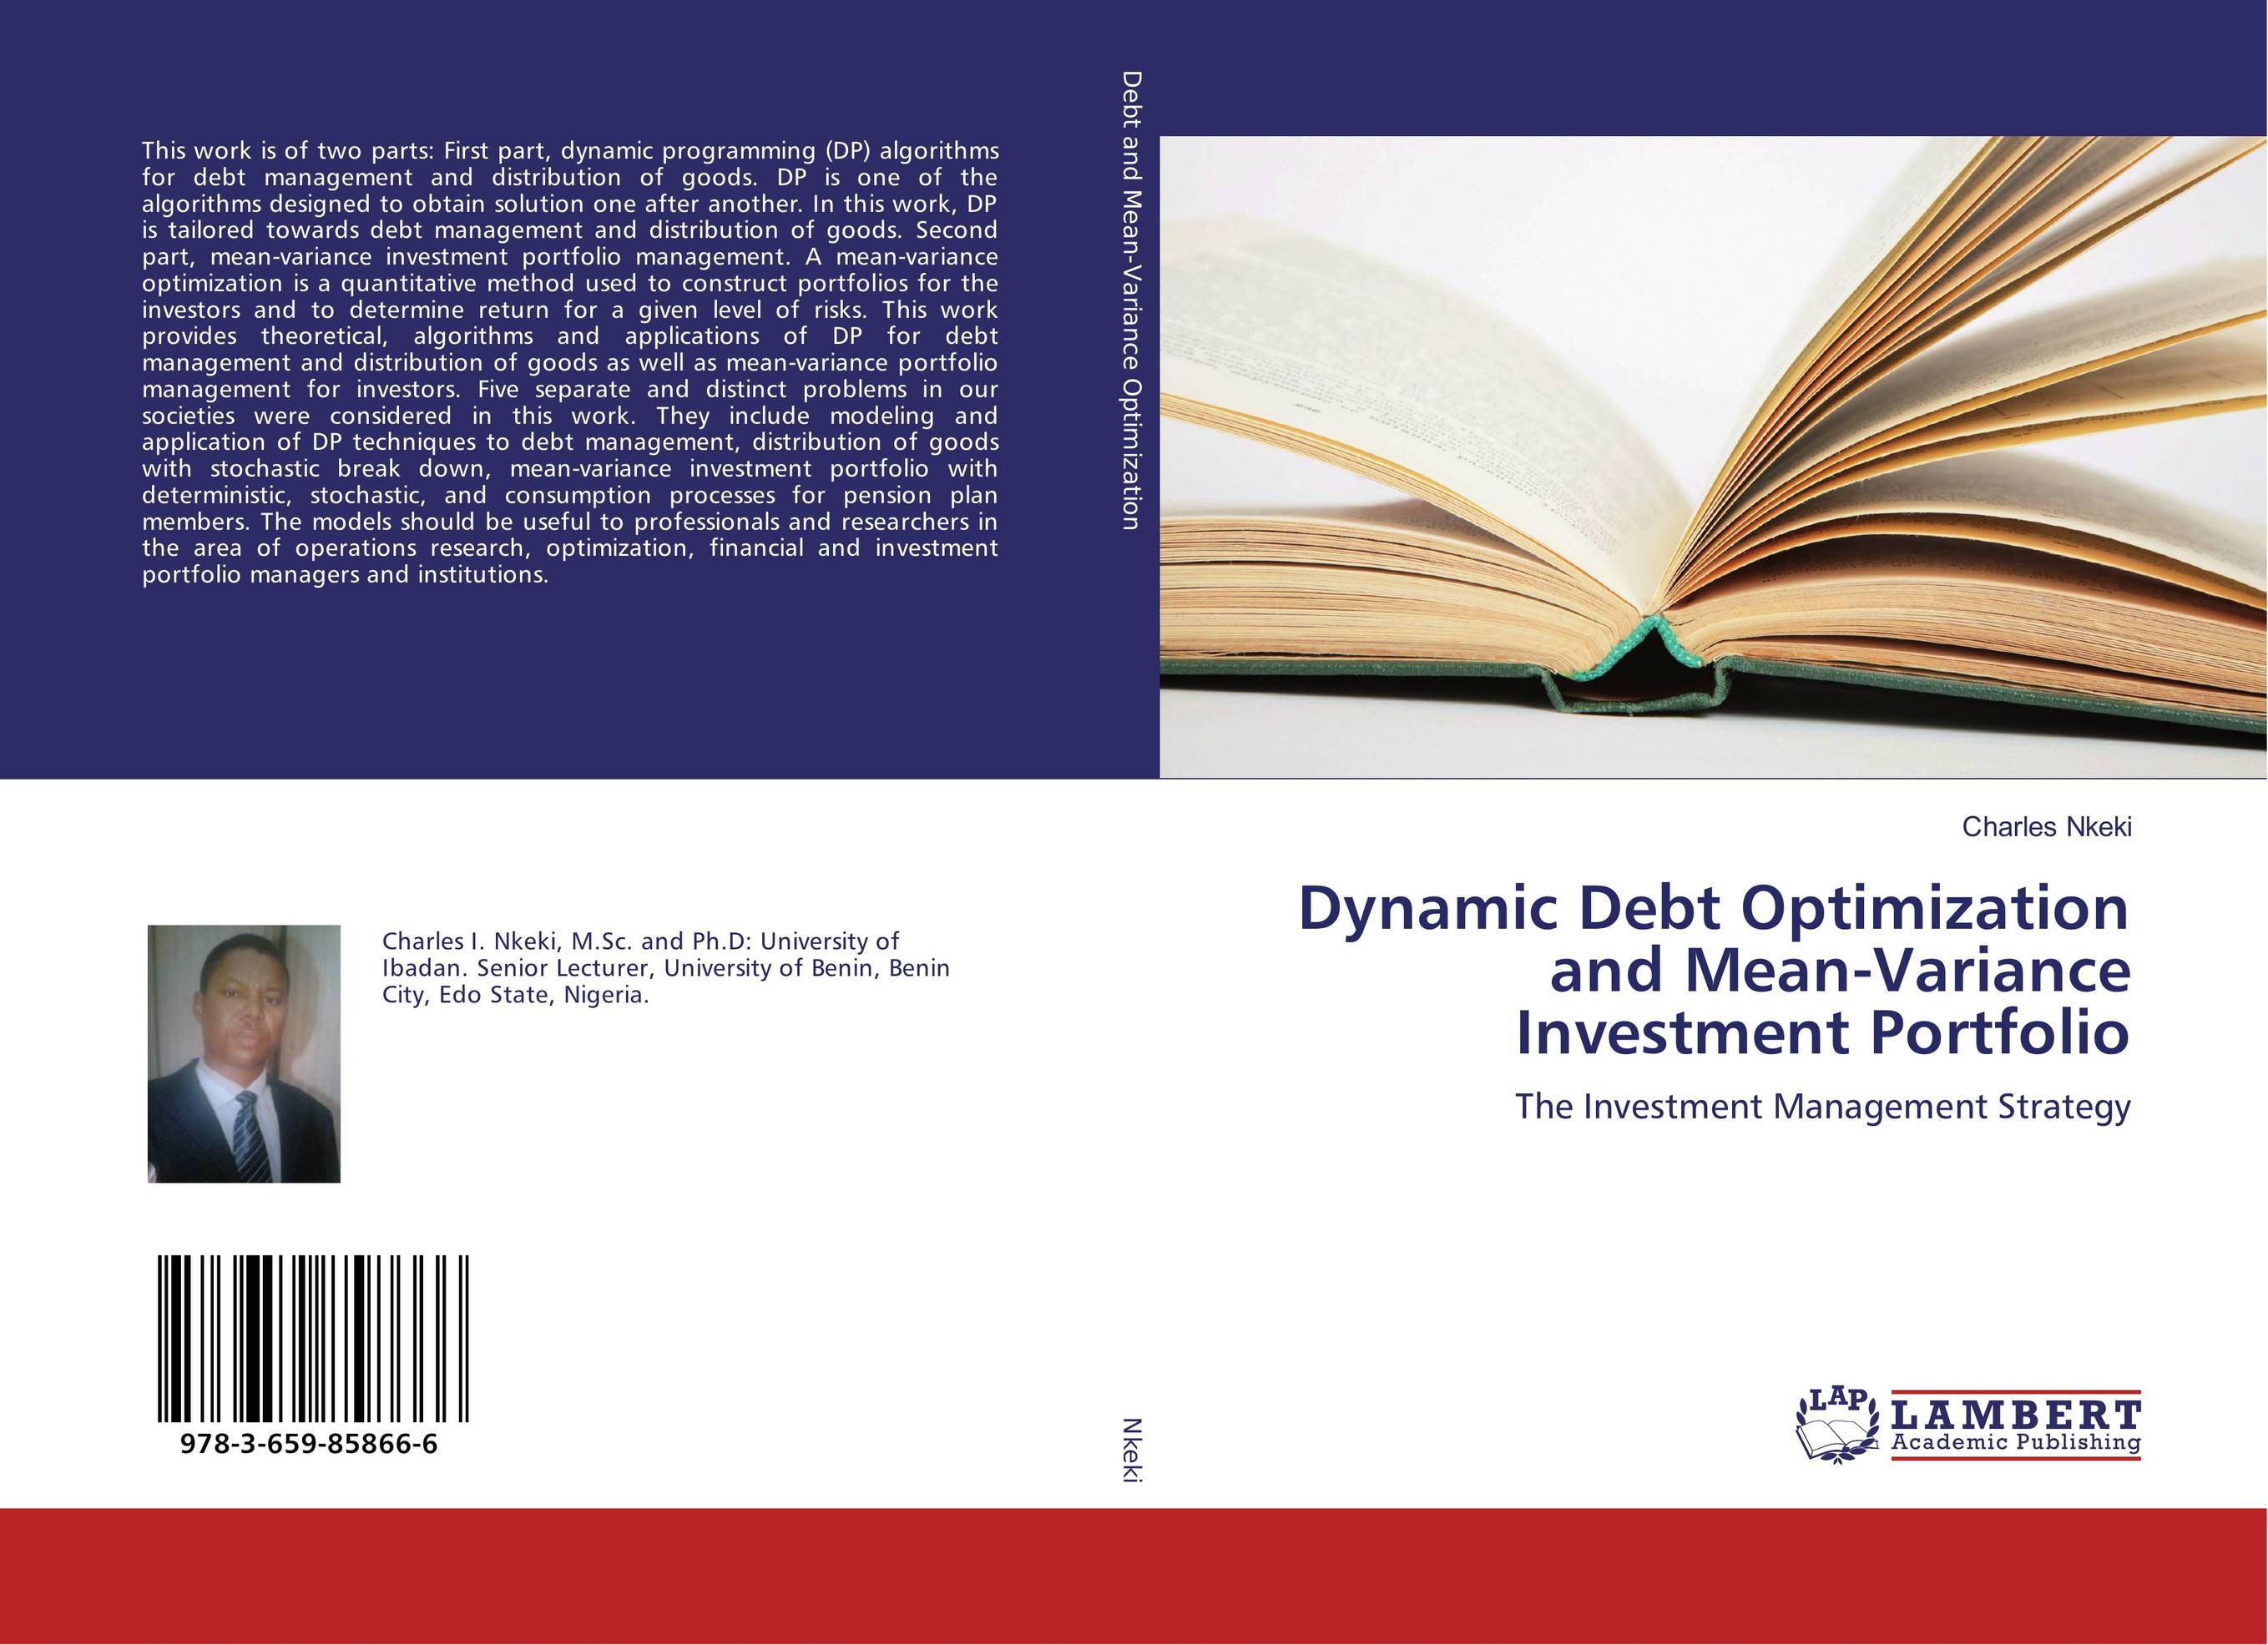 Dynamic Debt Optimization and Mean-Variance Investment Portfolio greg fedorinchik investment leadership and portfolio management the path to successful stewardship for investment firms